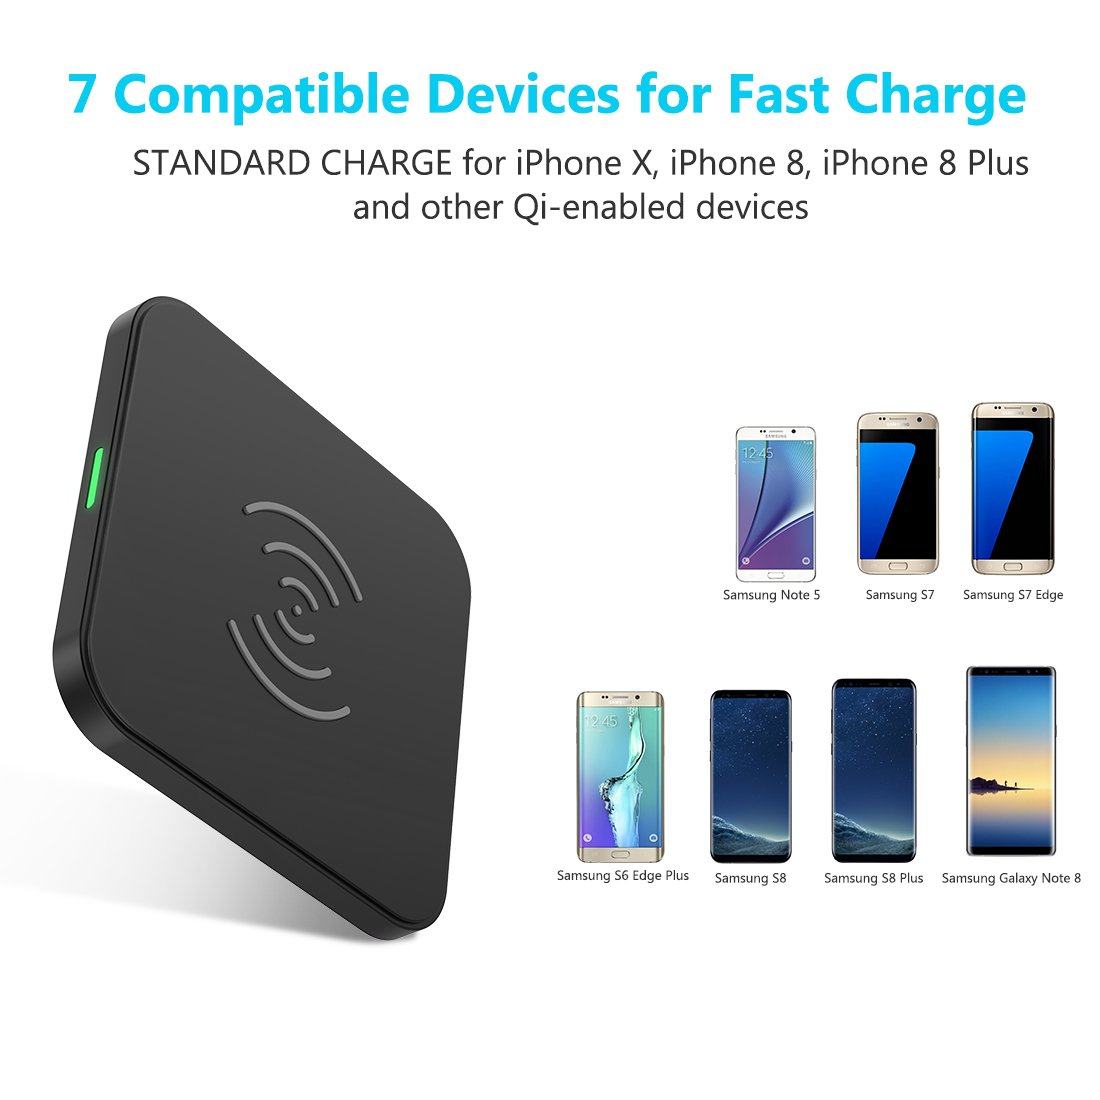 CHOETECH 10W Fast Wireless Charger Compatible Samsung Galaxy S9, S9 S8 Plus,Note 8, S8, S7, S7 Edge, Standard Wireless Charging Pad Compatible iPhone X, 8, 8 Plus (No AC Adapter) by CHOETECH (Image #5)